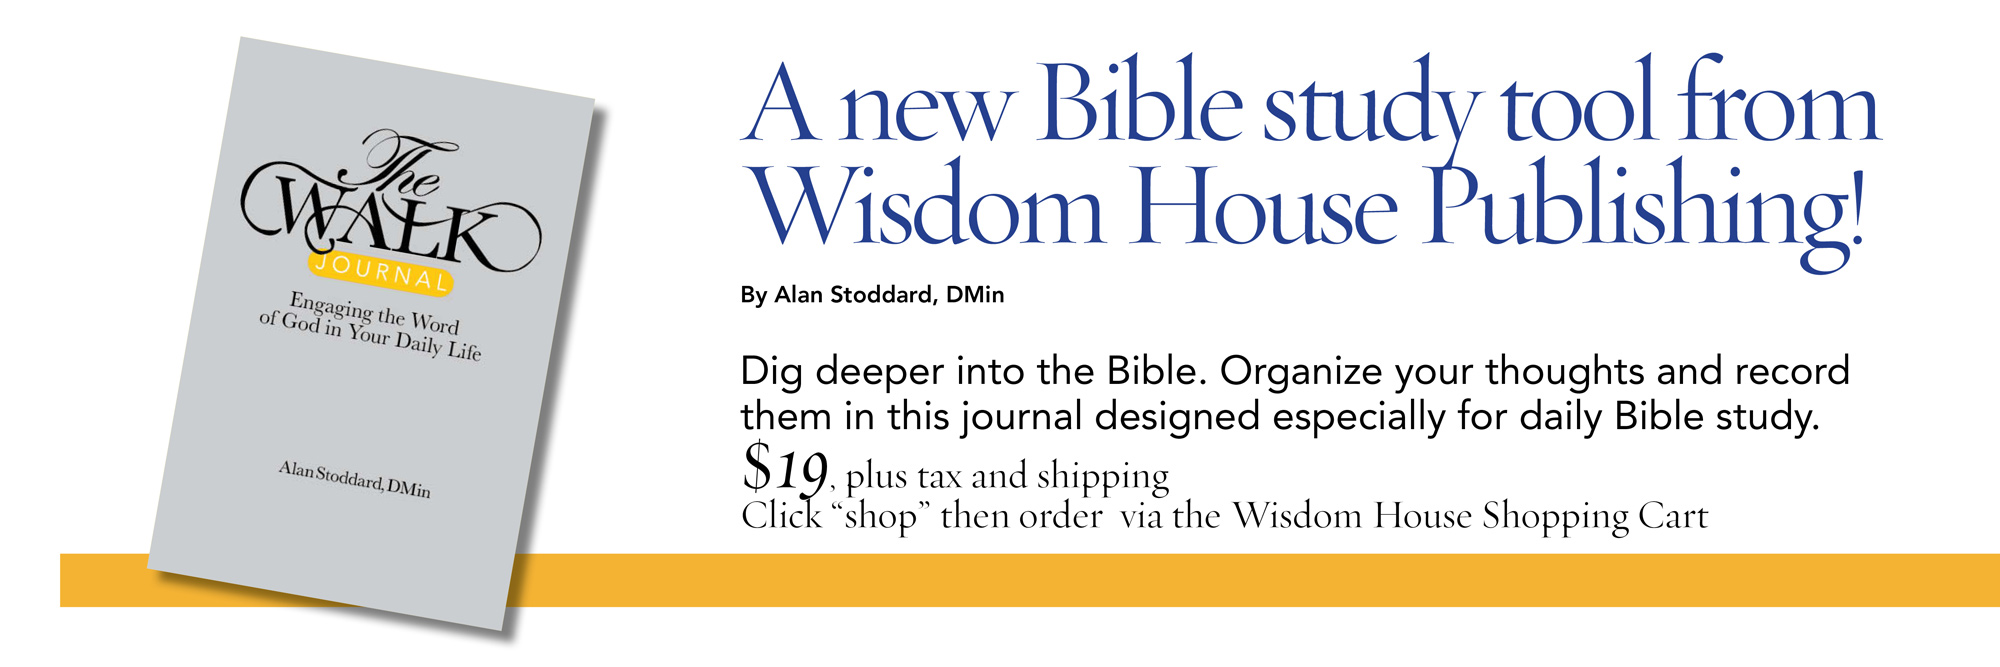 The Walk Journal: Engaging the Word of God in Your Daily Life